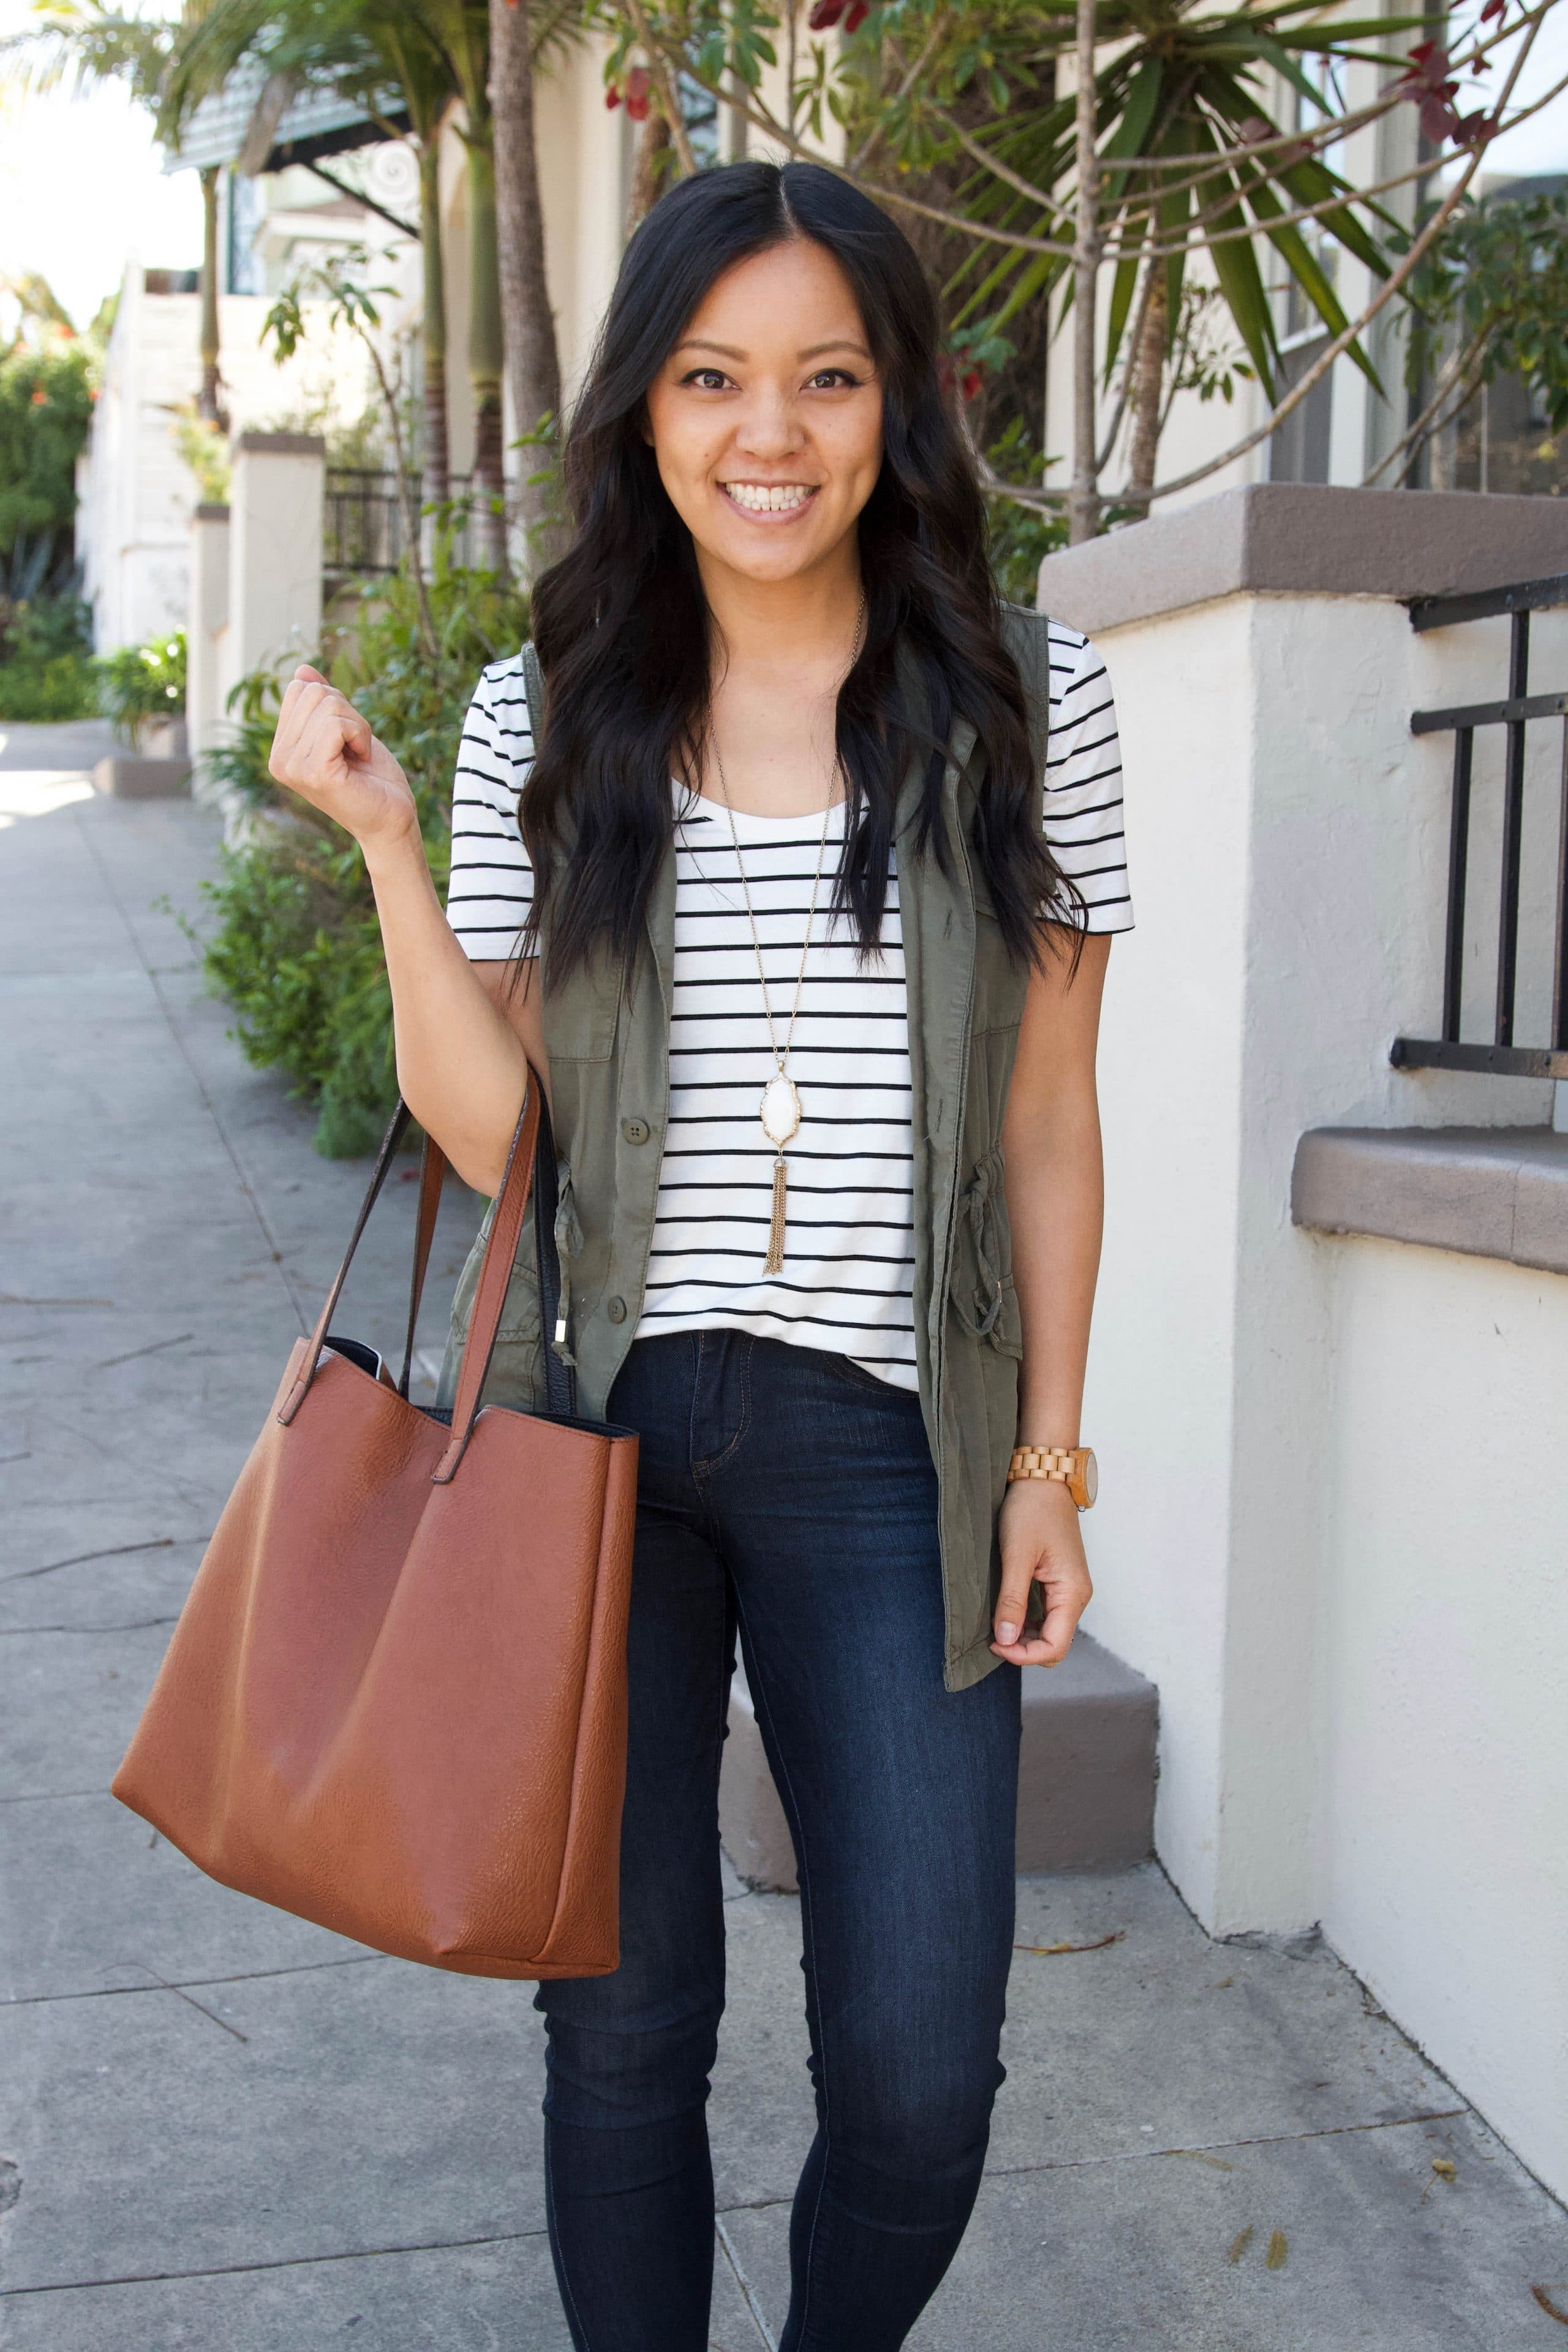 olive utility vest + striped tee + skinny jeans + brown tote